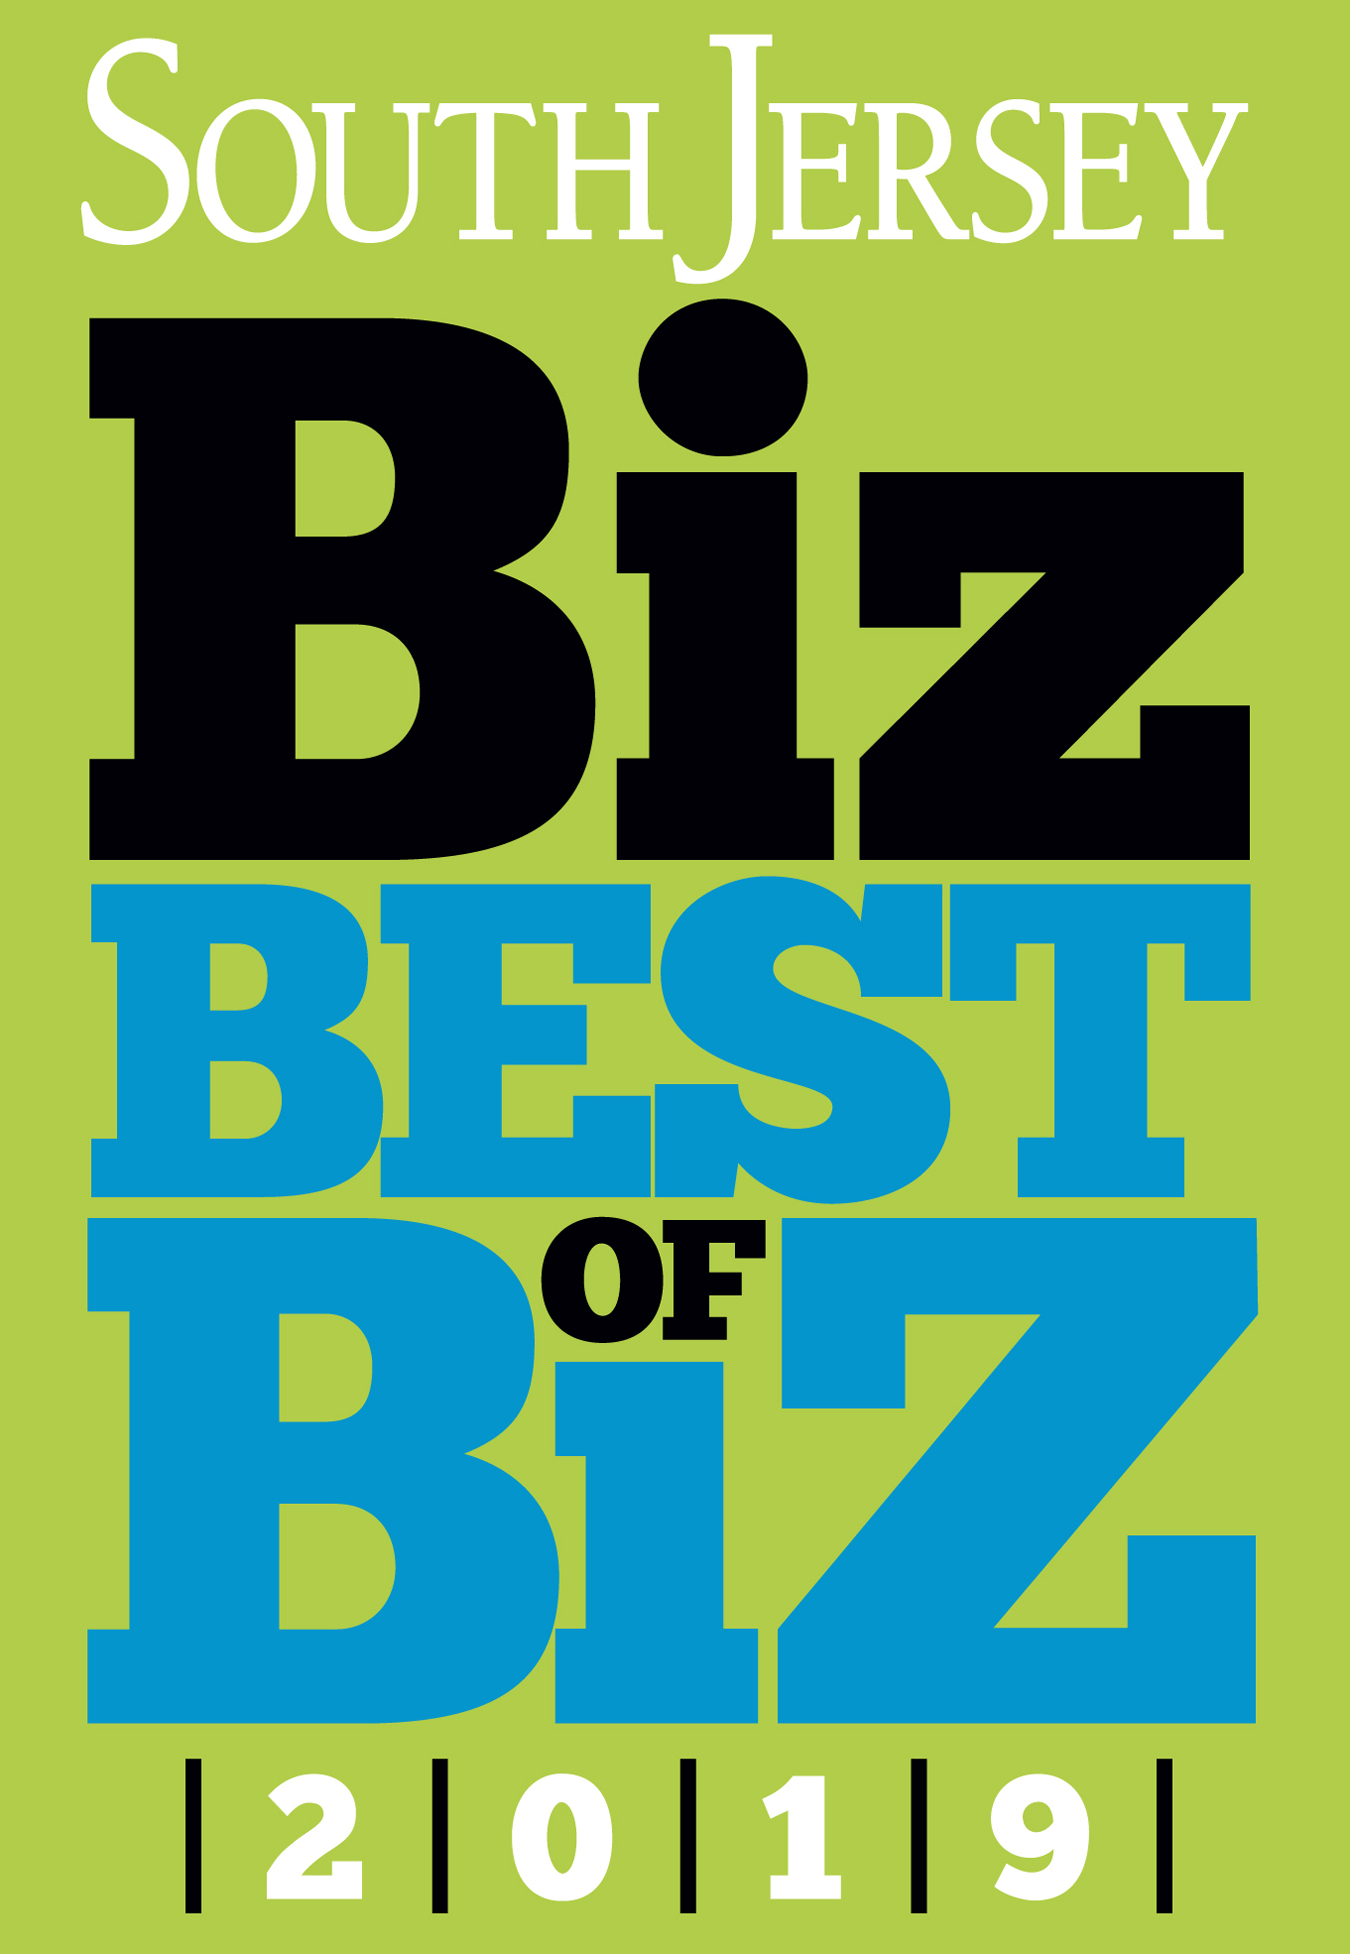 We've Been Named One of 2019's Best of Biz